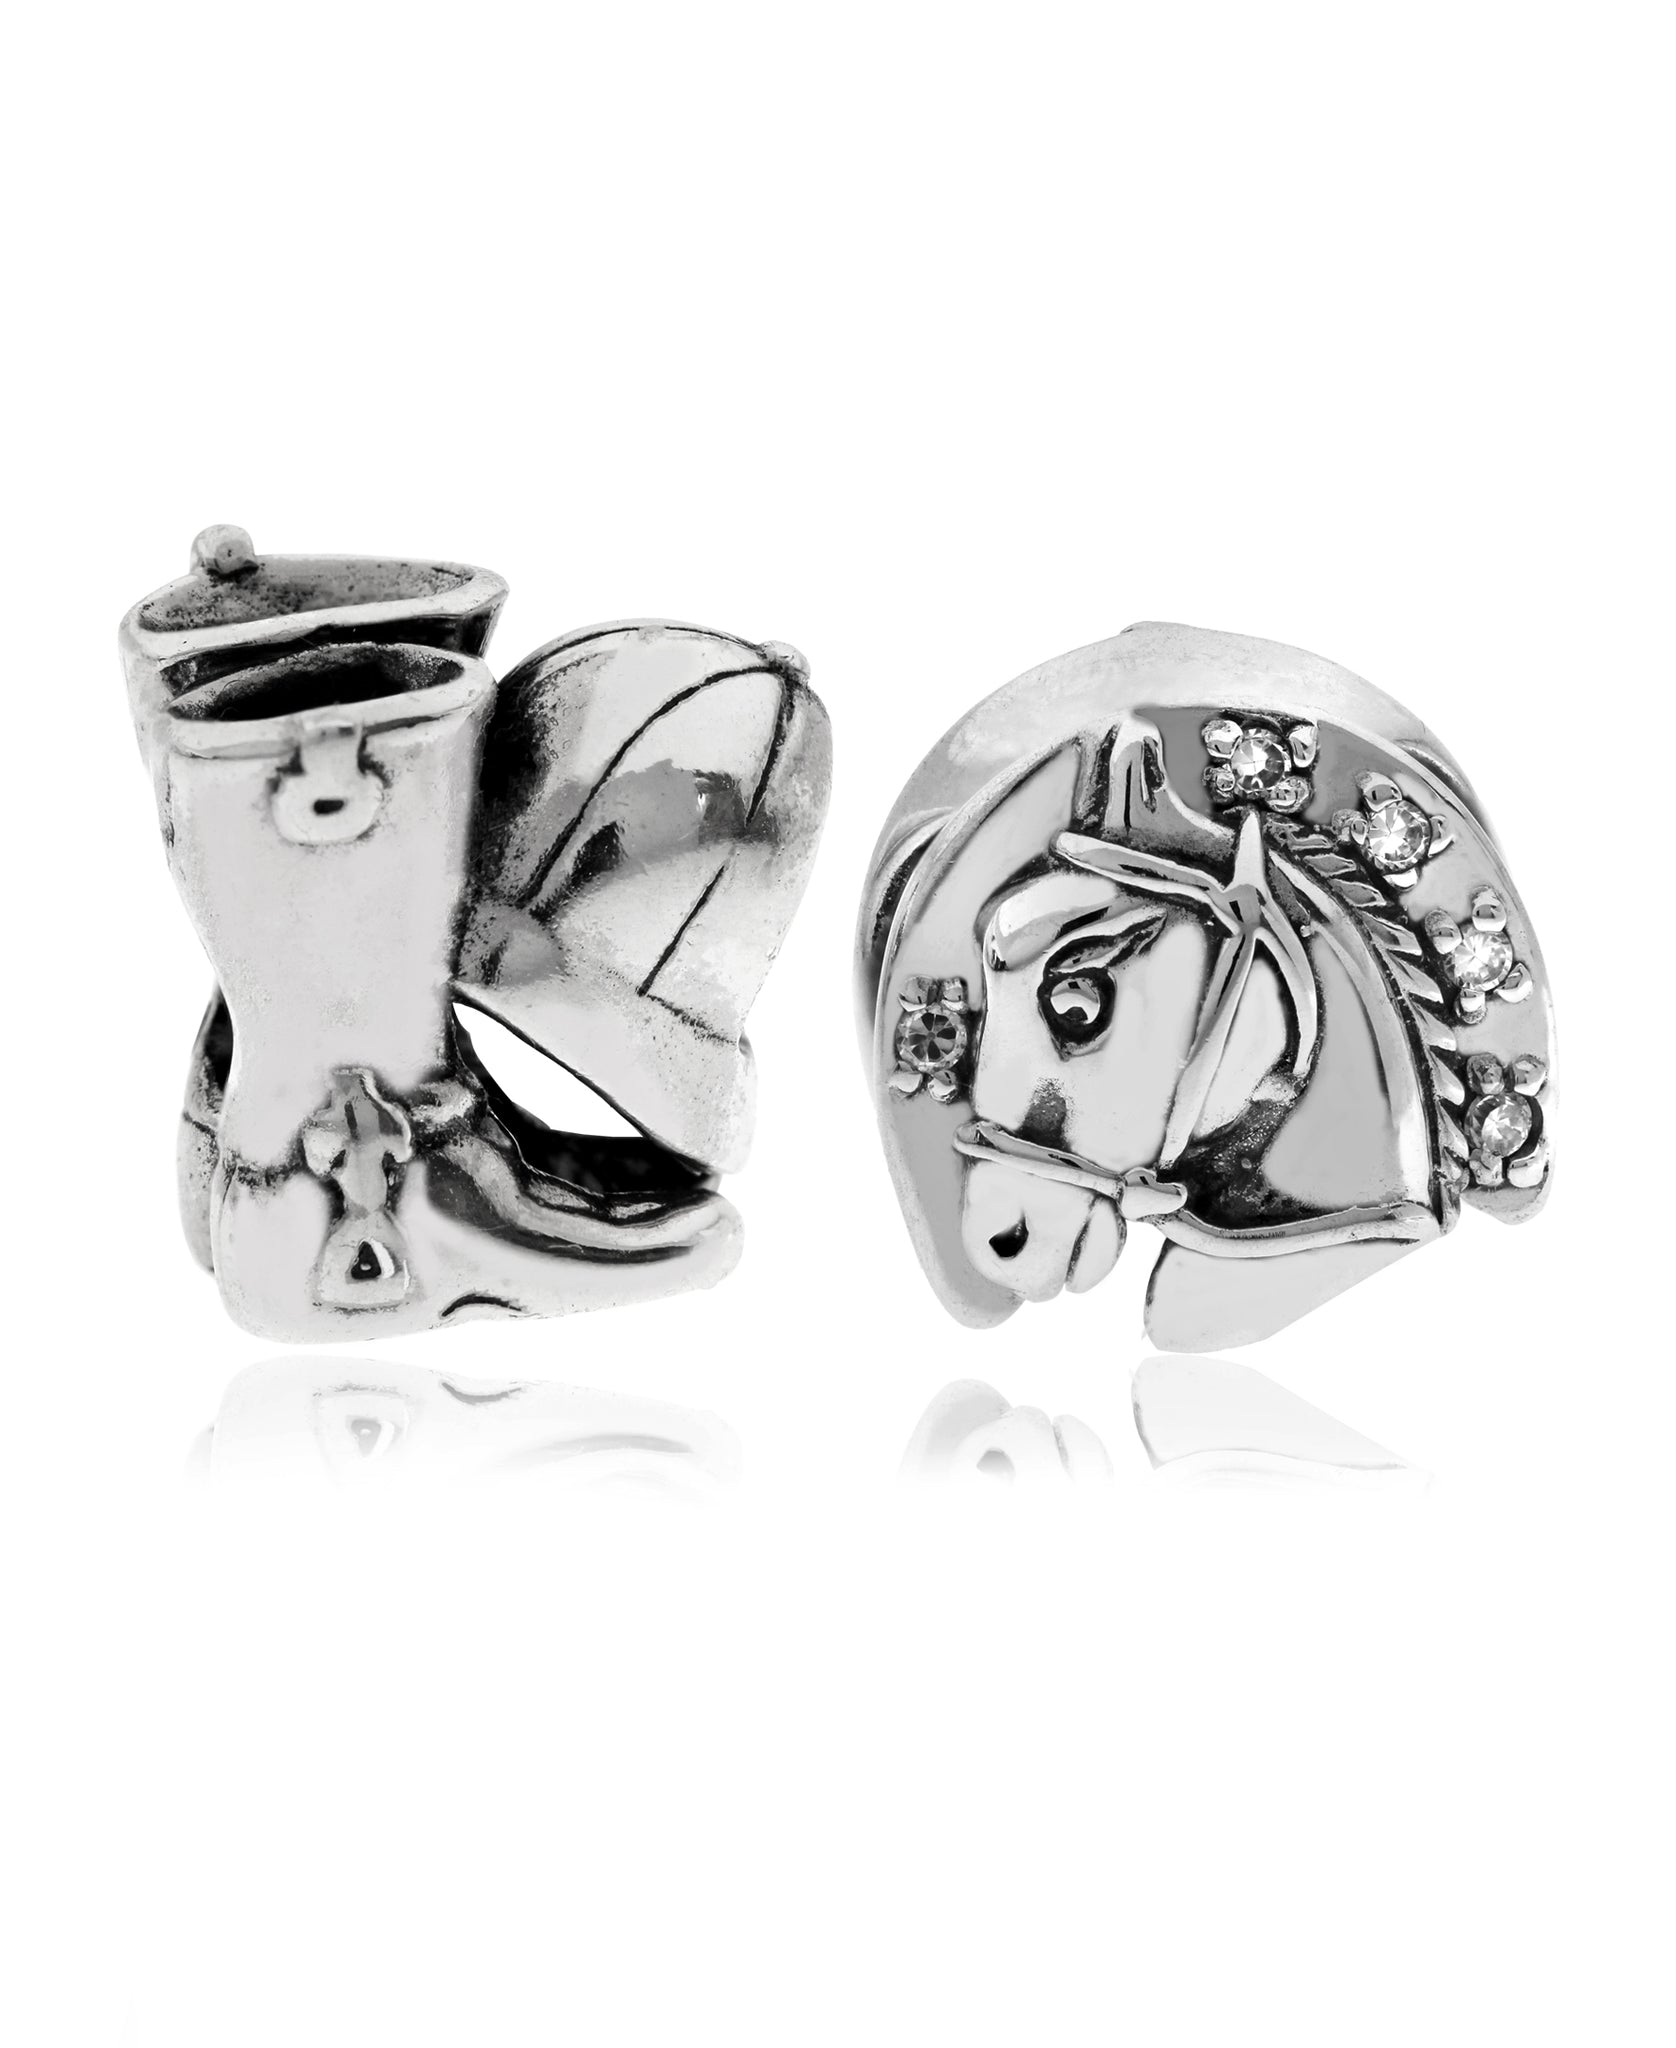 2-Pc. Equestrian Bead Charms in Sterling Silver - Rhona Sutton Jewellery